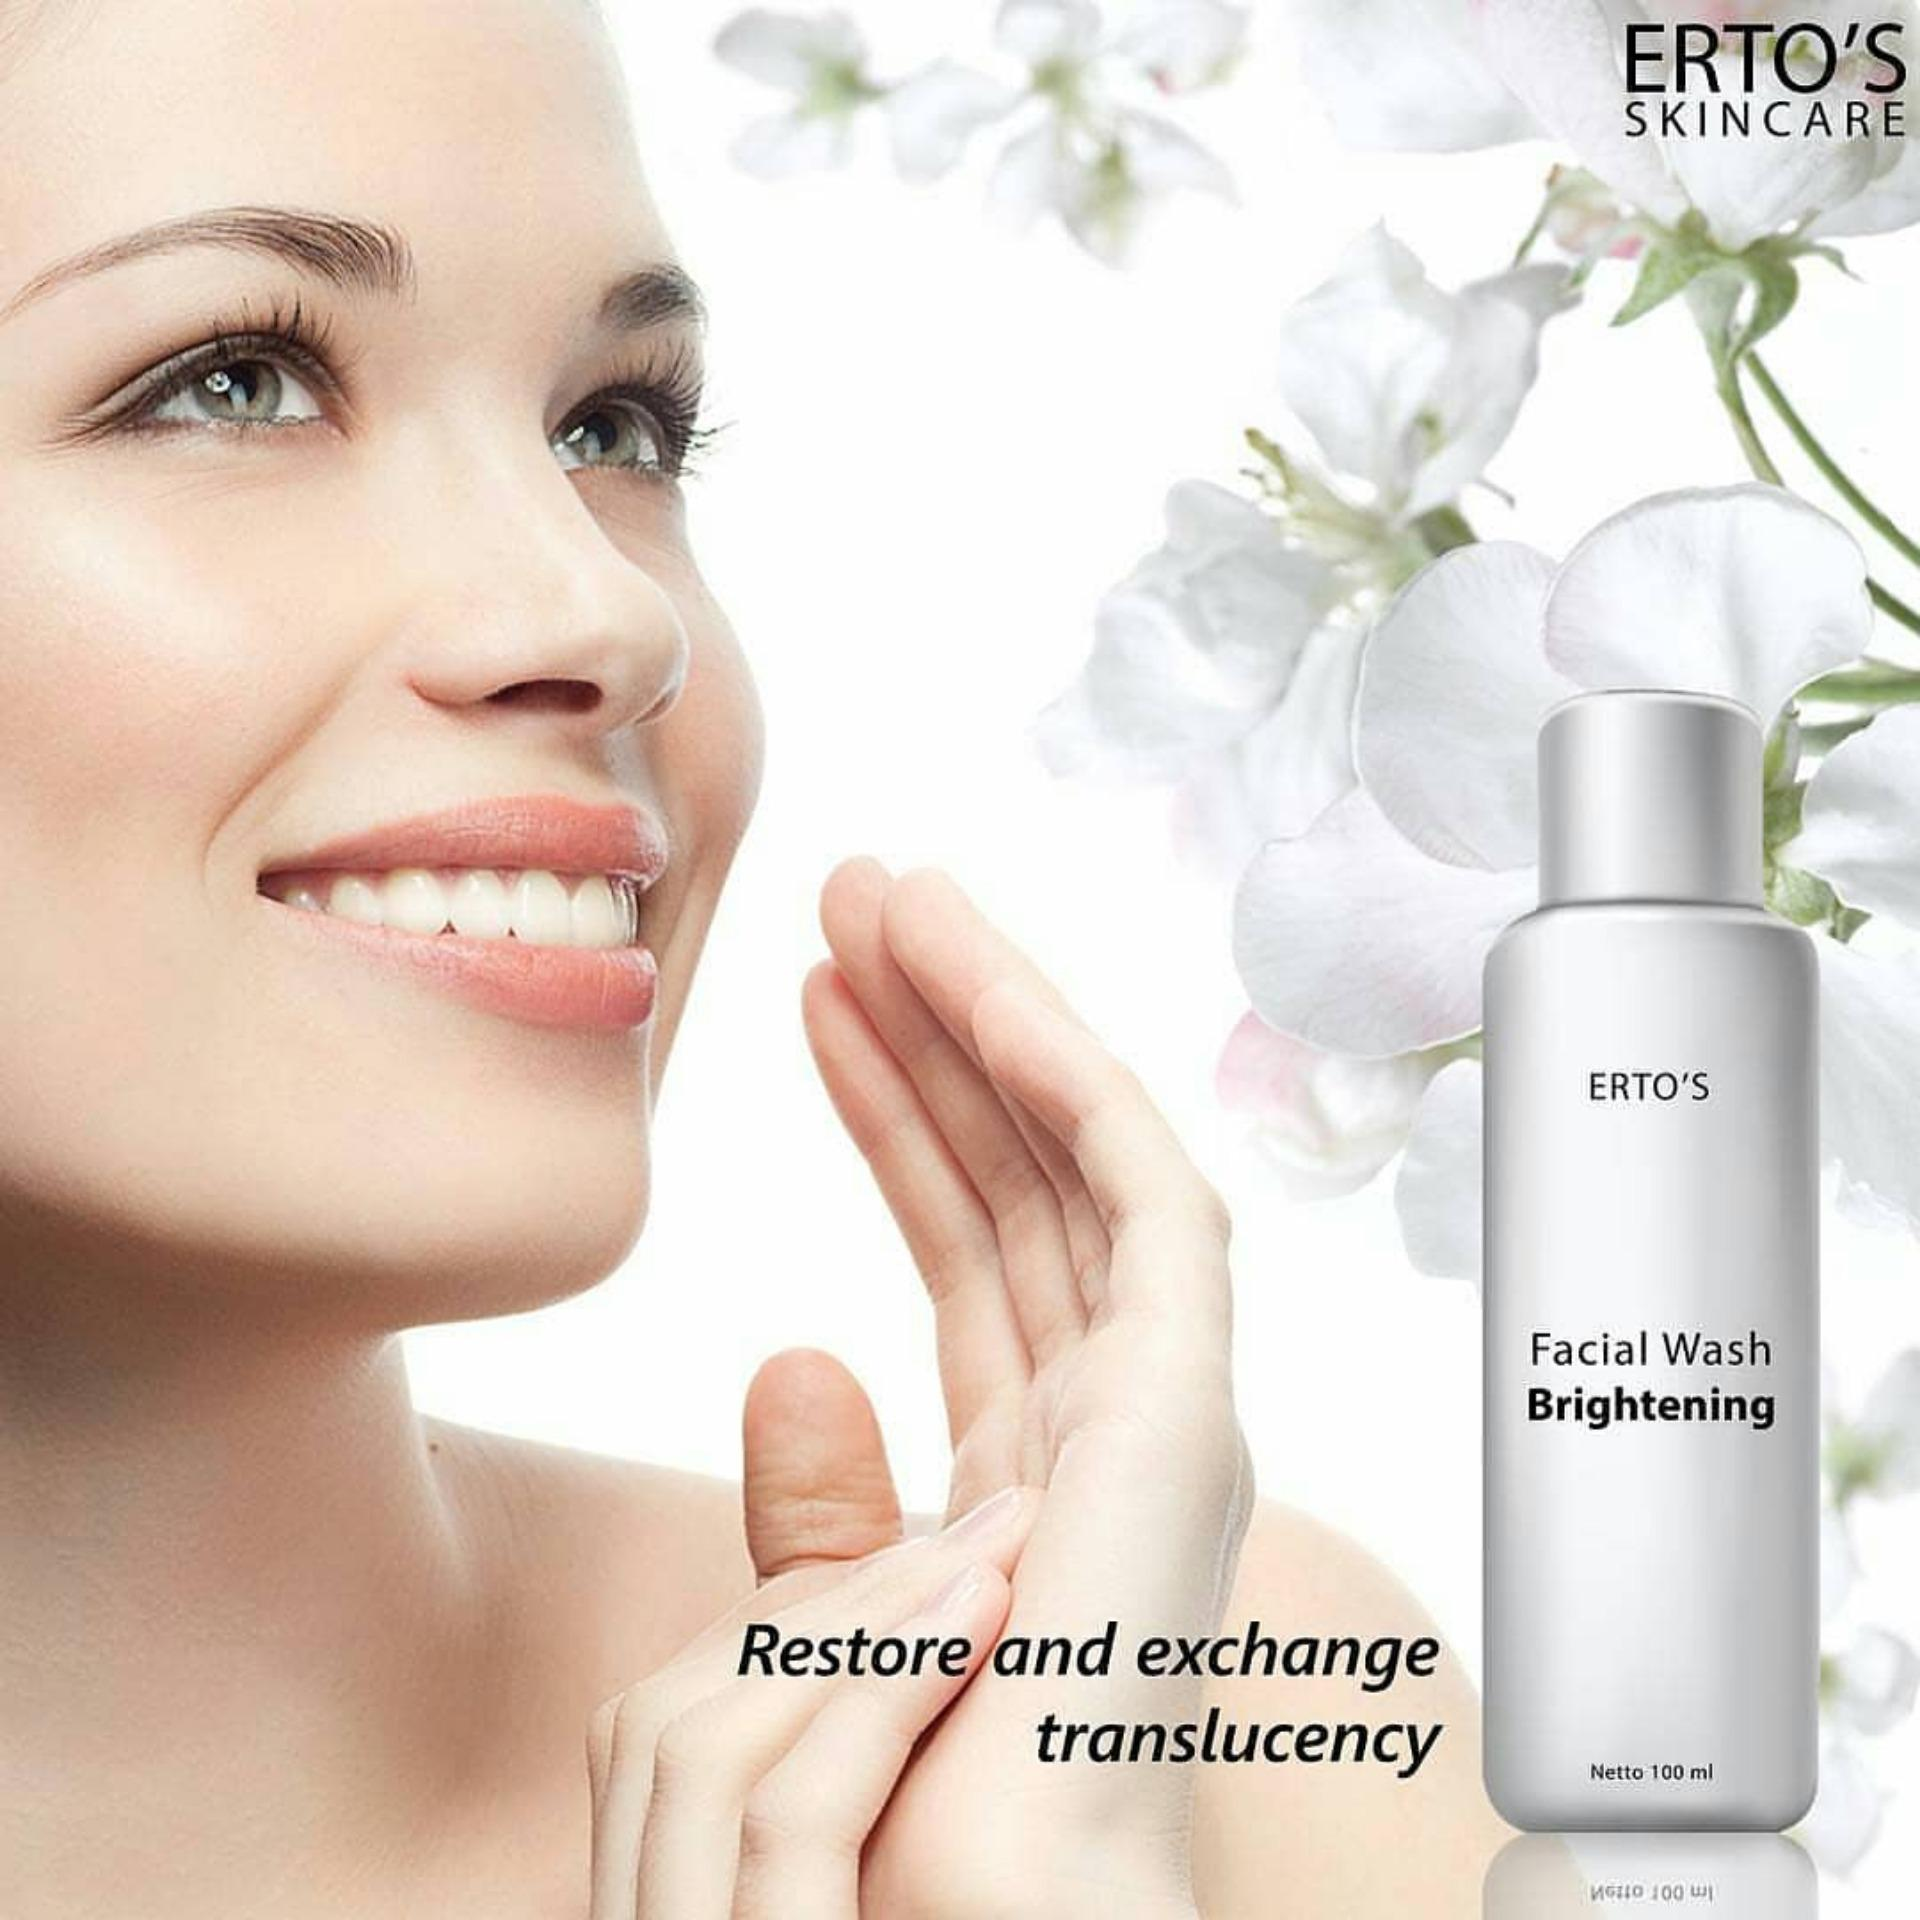 Ertos Facial Wash Brightening Bpom Original Buy Sell Cheapest Skincare Best Quality Product Deals Treatment Sabun Cuci Muka